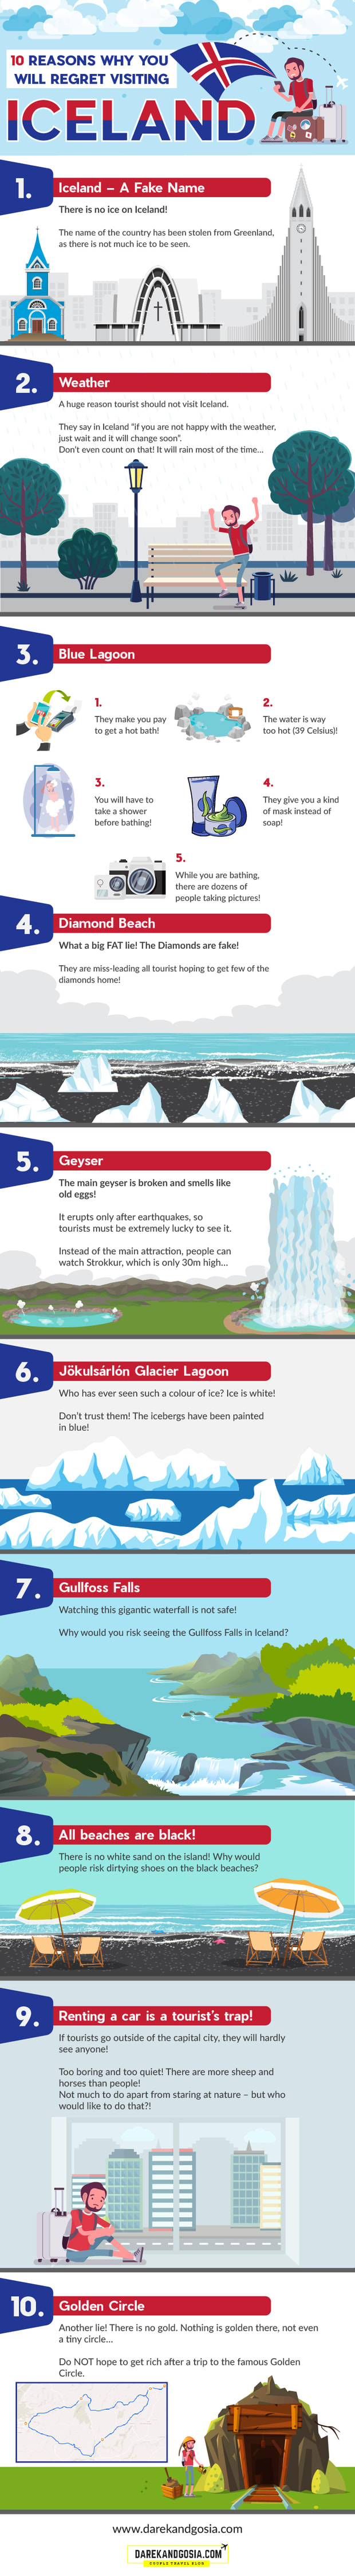 Things to do in Iceland - 10 reasons why you will regret visiting Iceland.